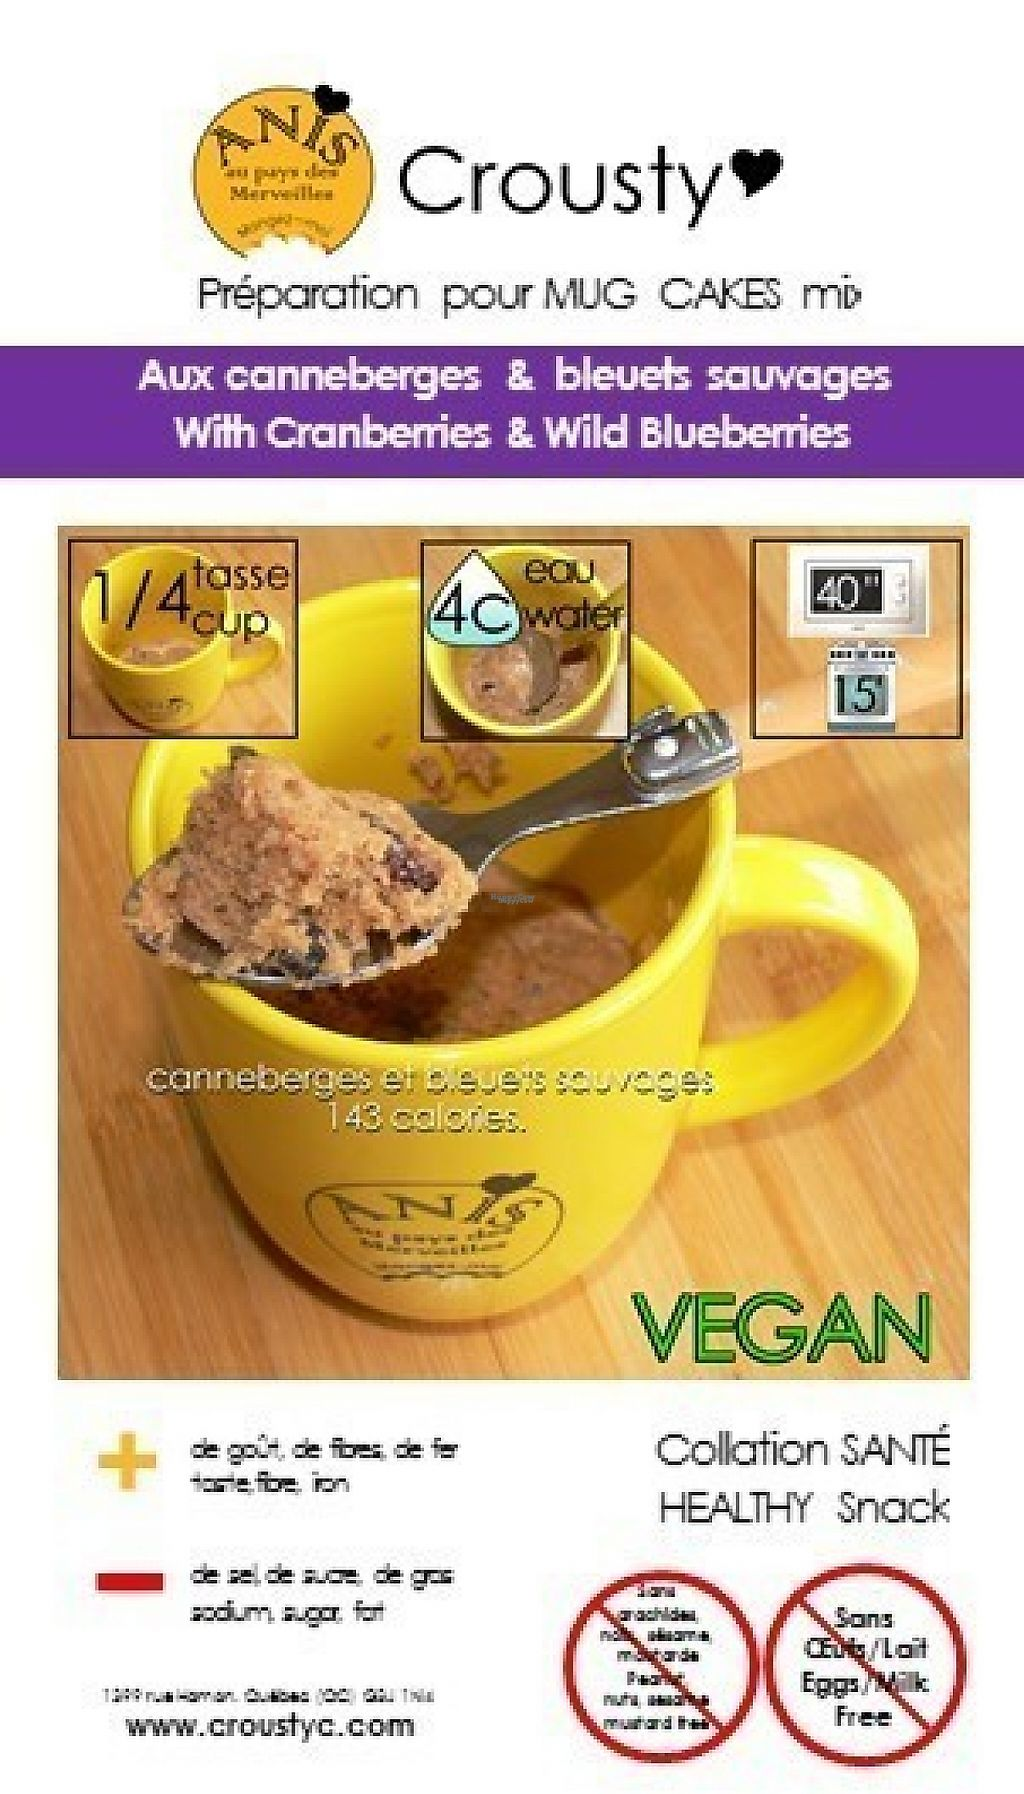 """Photo of Anis au Pays des Merveilles  by <a href=""""/members/profile/fibag21"""">fibag21</a> <br/>mug cakes mix with cranberries and wild blueberries <br/> March 20, 2017  - <a href='/contact/abuse/image/88975/238855'>Report</a>"""